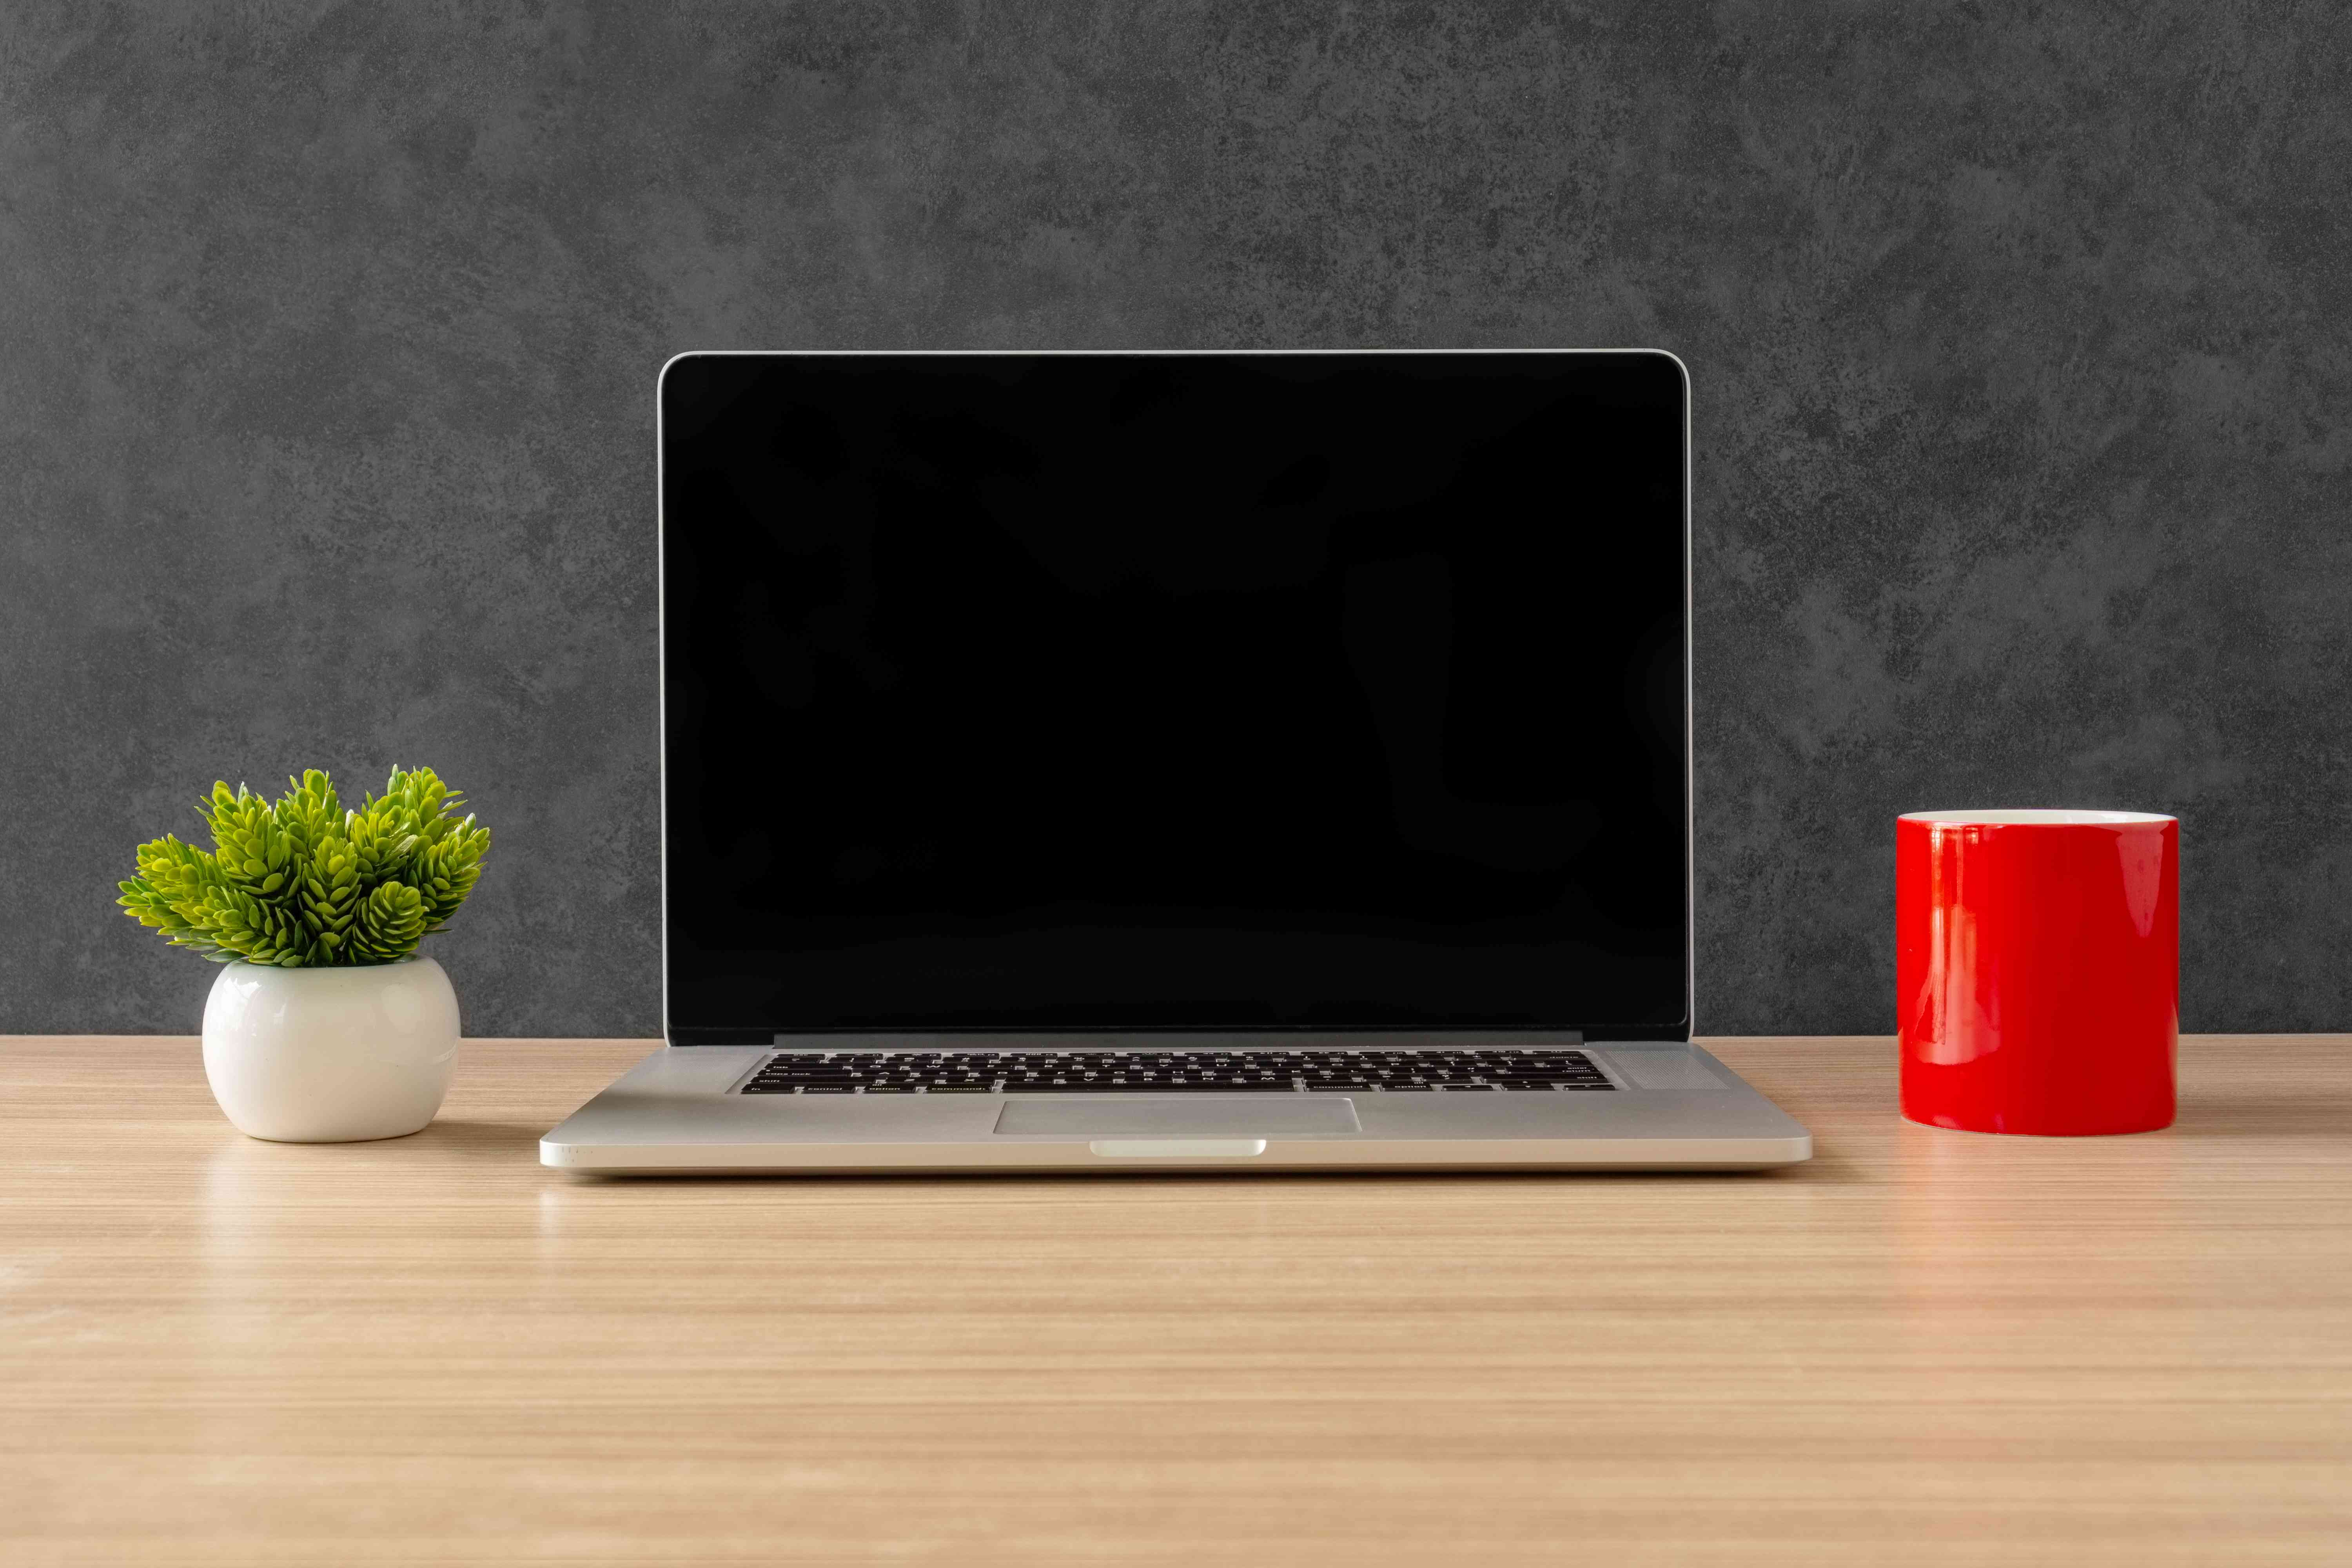 Laptop and Red Coffee Mug on Office Desk